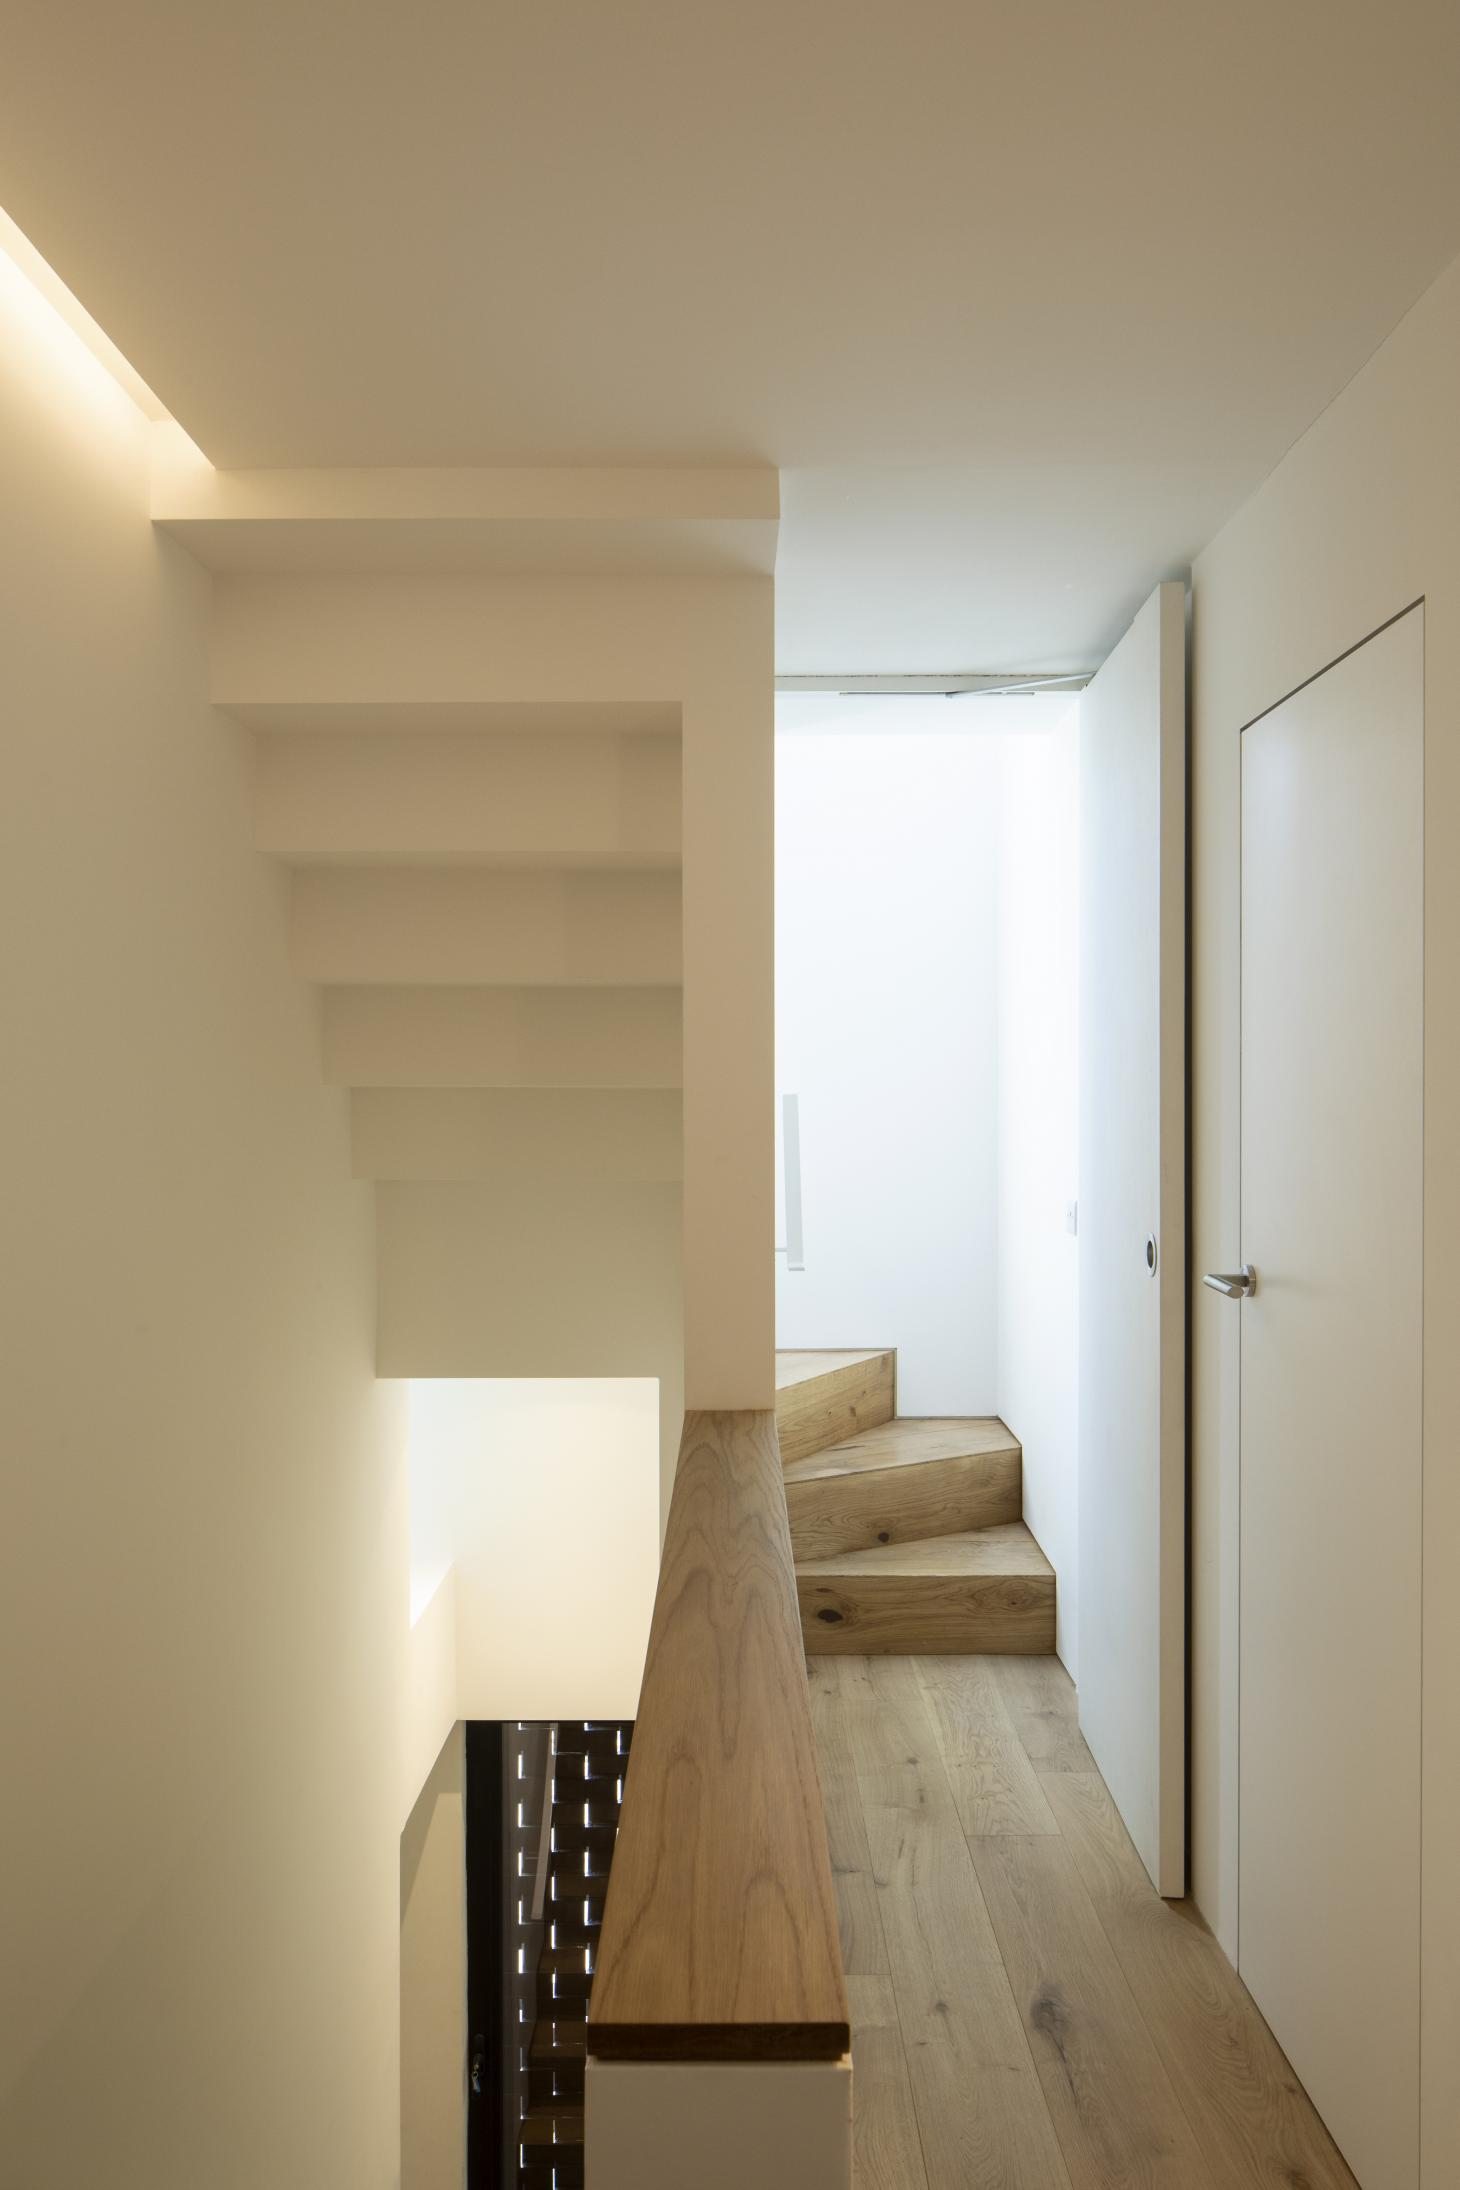 sculptural wooden staircase in London apartment